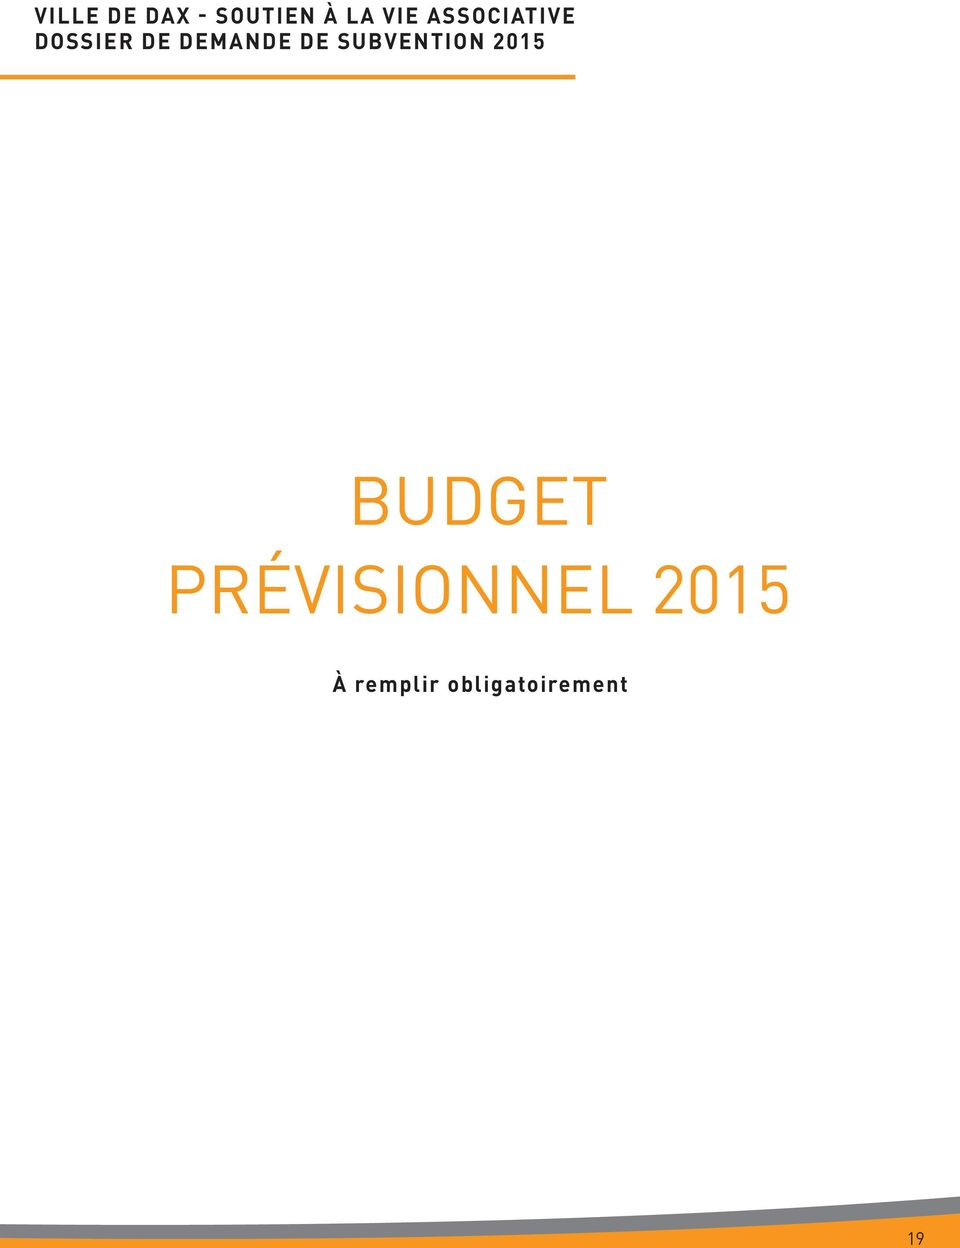 SUBVENTION 2015 BUDGET